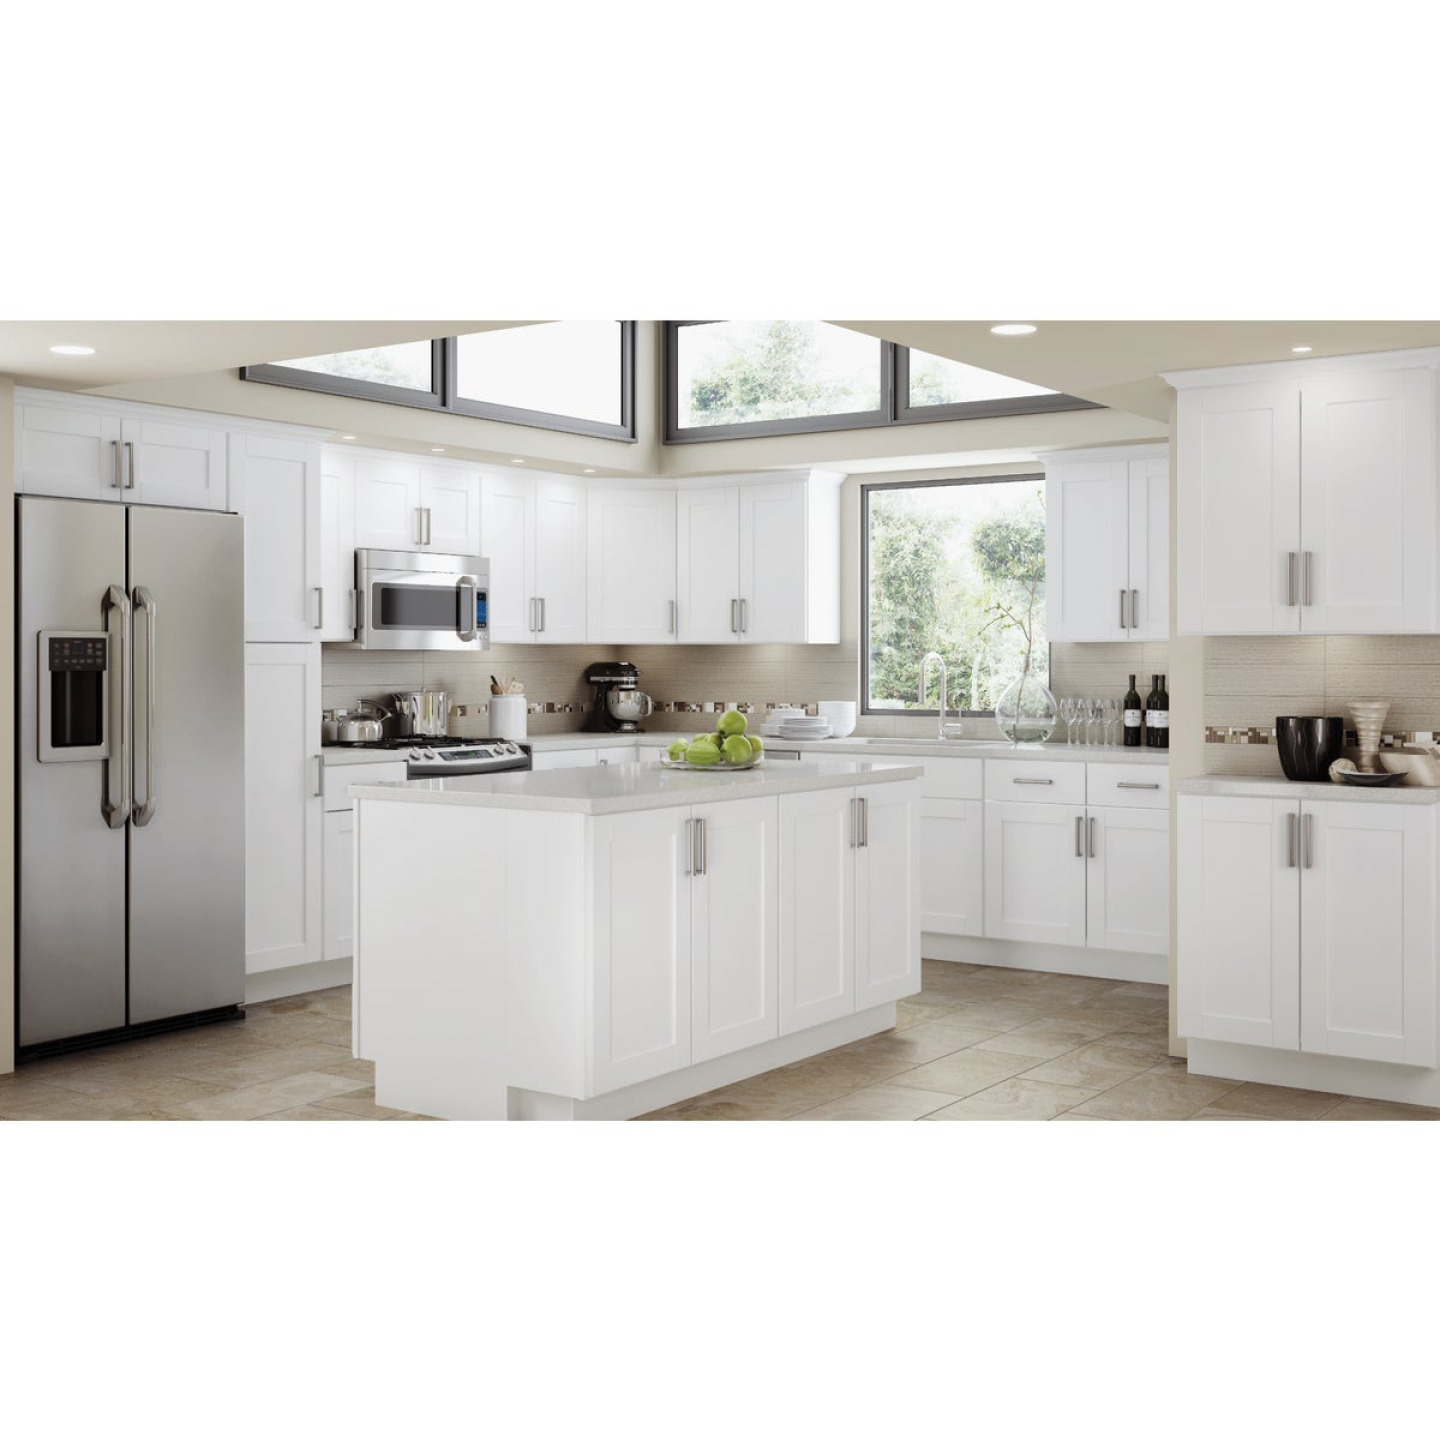 Continental Cabinets Andover Shaker 36 In. W x 12 In. H x 12 In. D White Thermofoil Bridge Wall Kitchen Cabinet Image 2